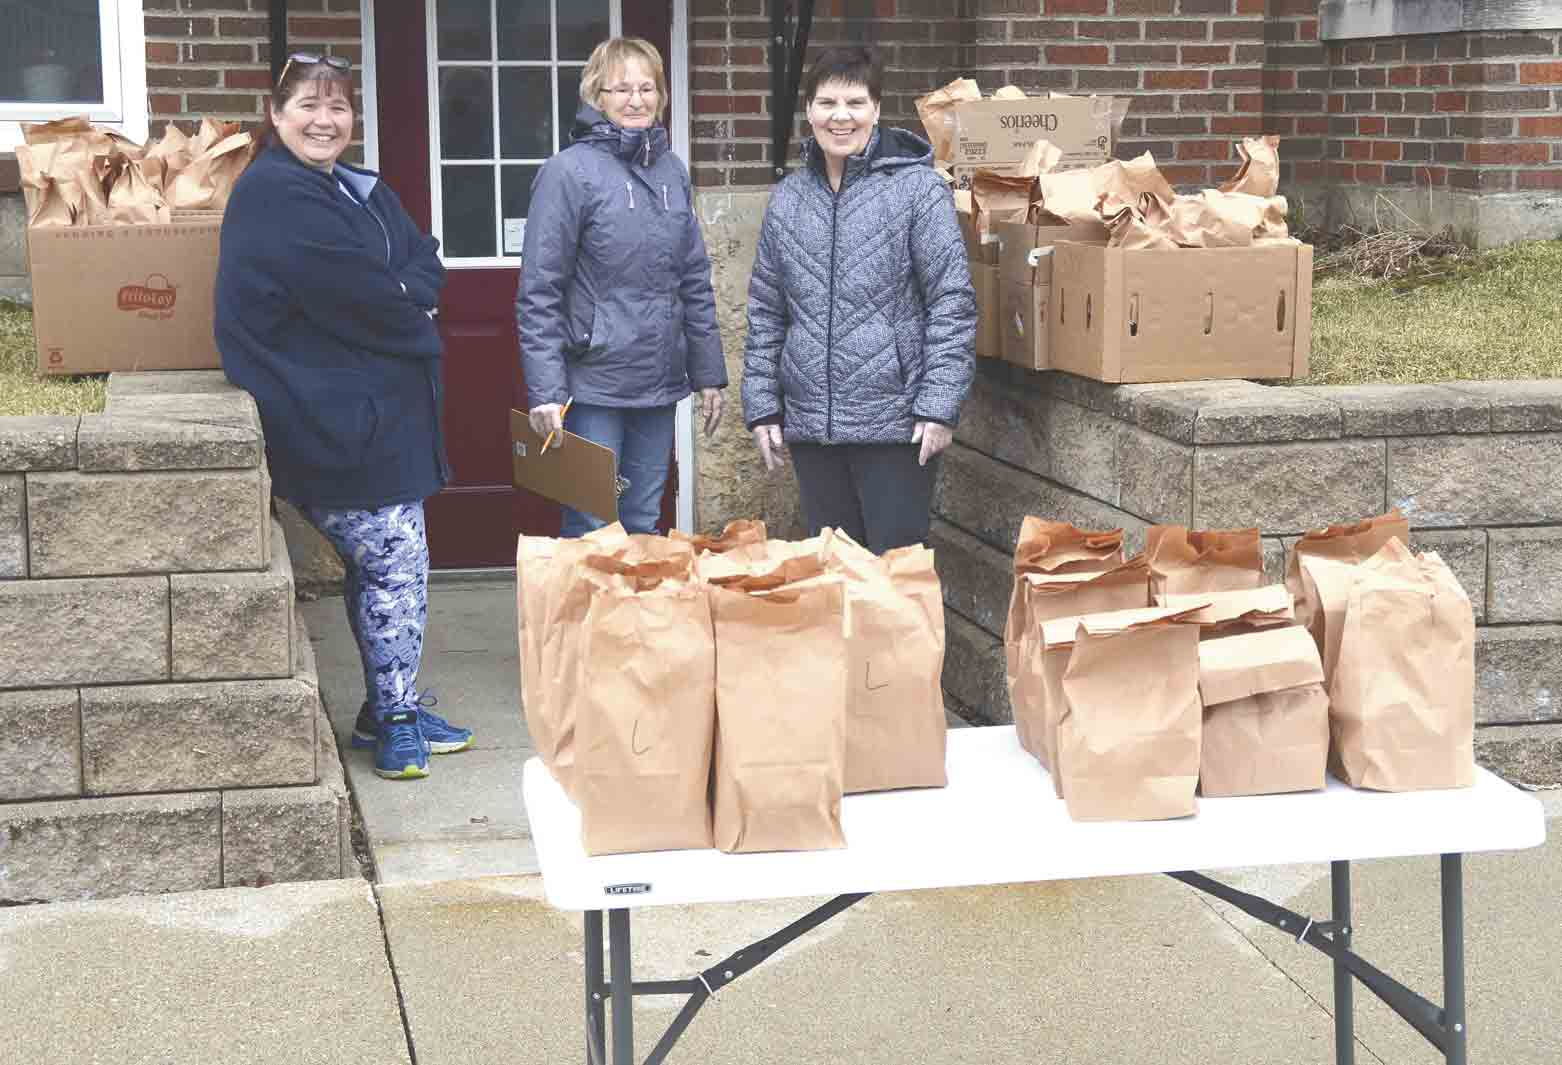 North Fayette Valley School Lunch personnel (l-r) Tina Berg, Sheila Noska, and Gloria Wagner were helping deliver sack lunches Monday, March 23, at the Bethel Presbyterian Church in West Union. (Jack Swanson photo) 	Schools out for now, but that doesn't mean students have to go...